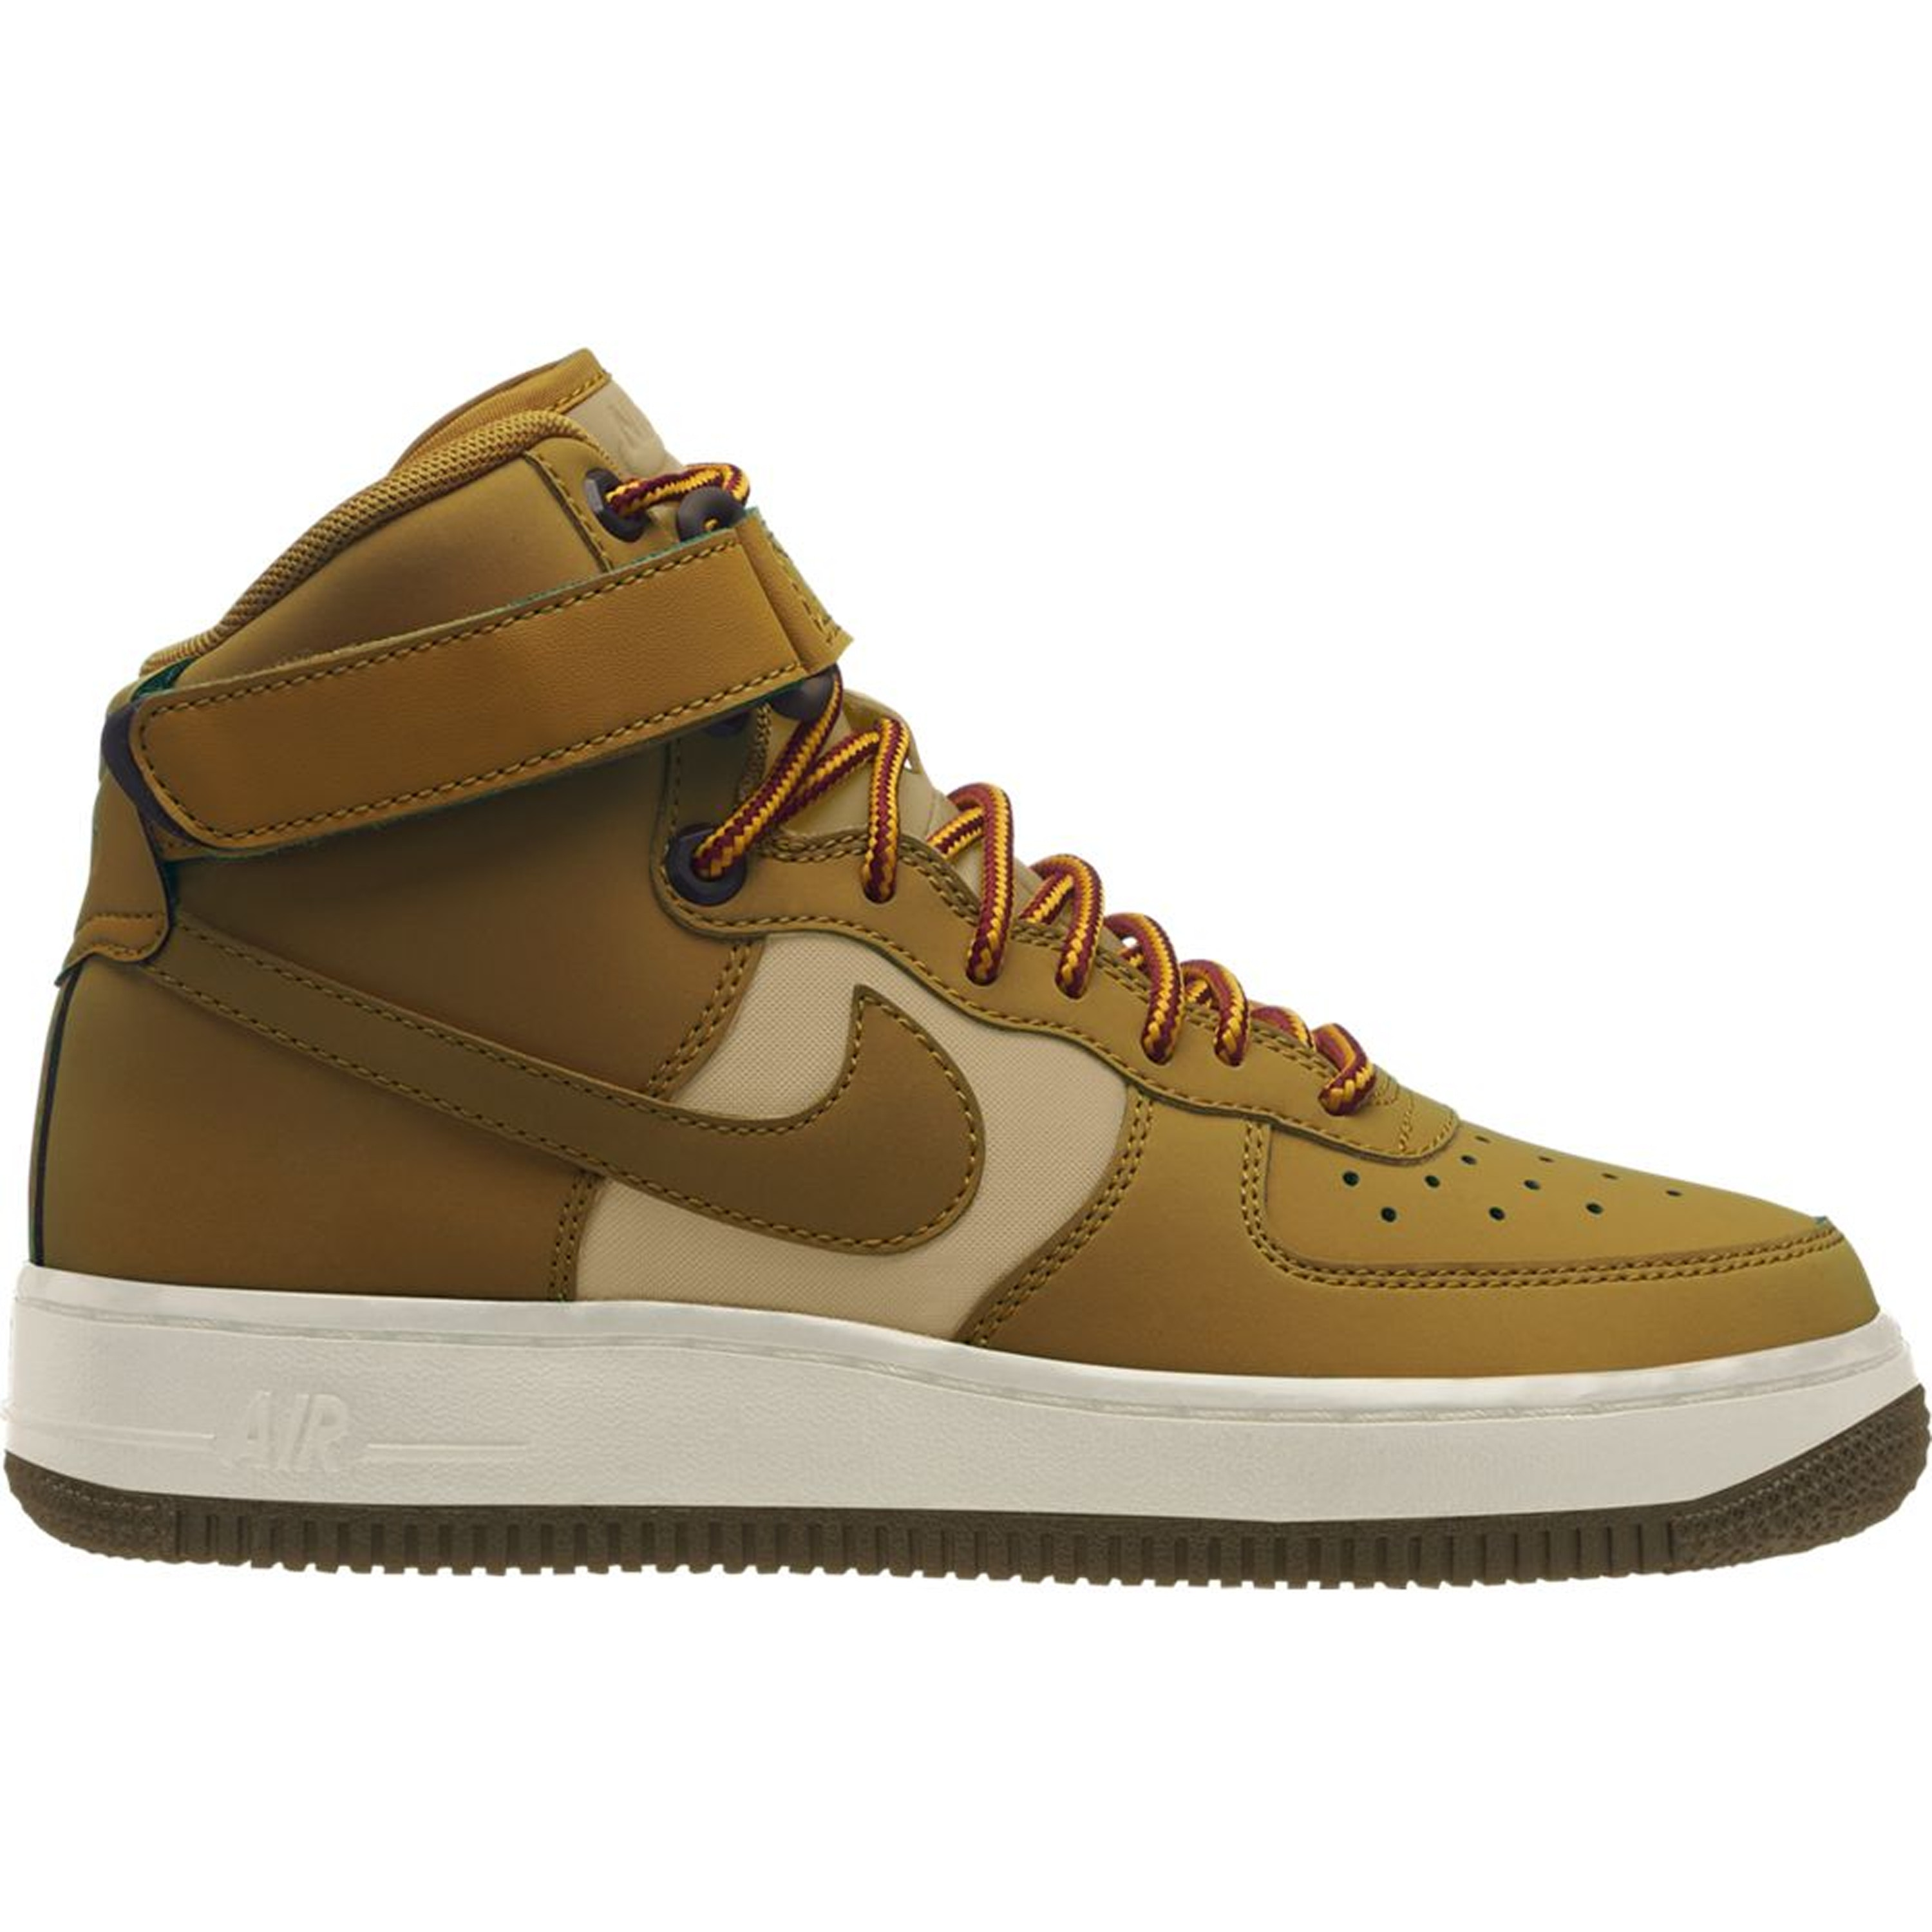 Nike Air Force 1 High Premier Beef and Broccoli Pack Wheat (GS) (AR0733-800)